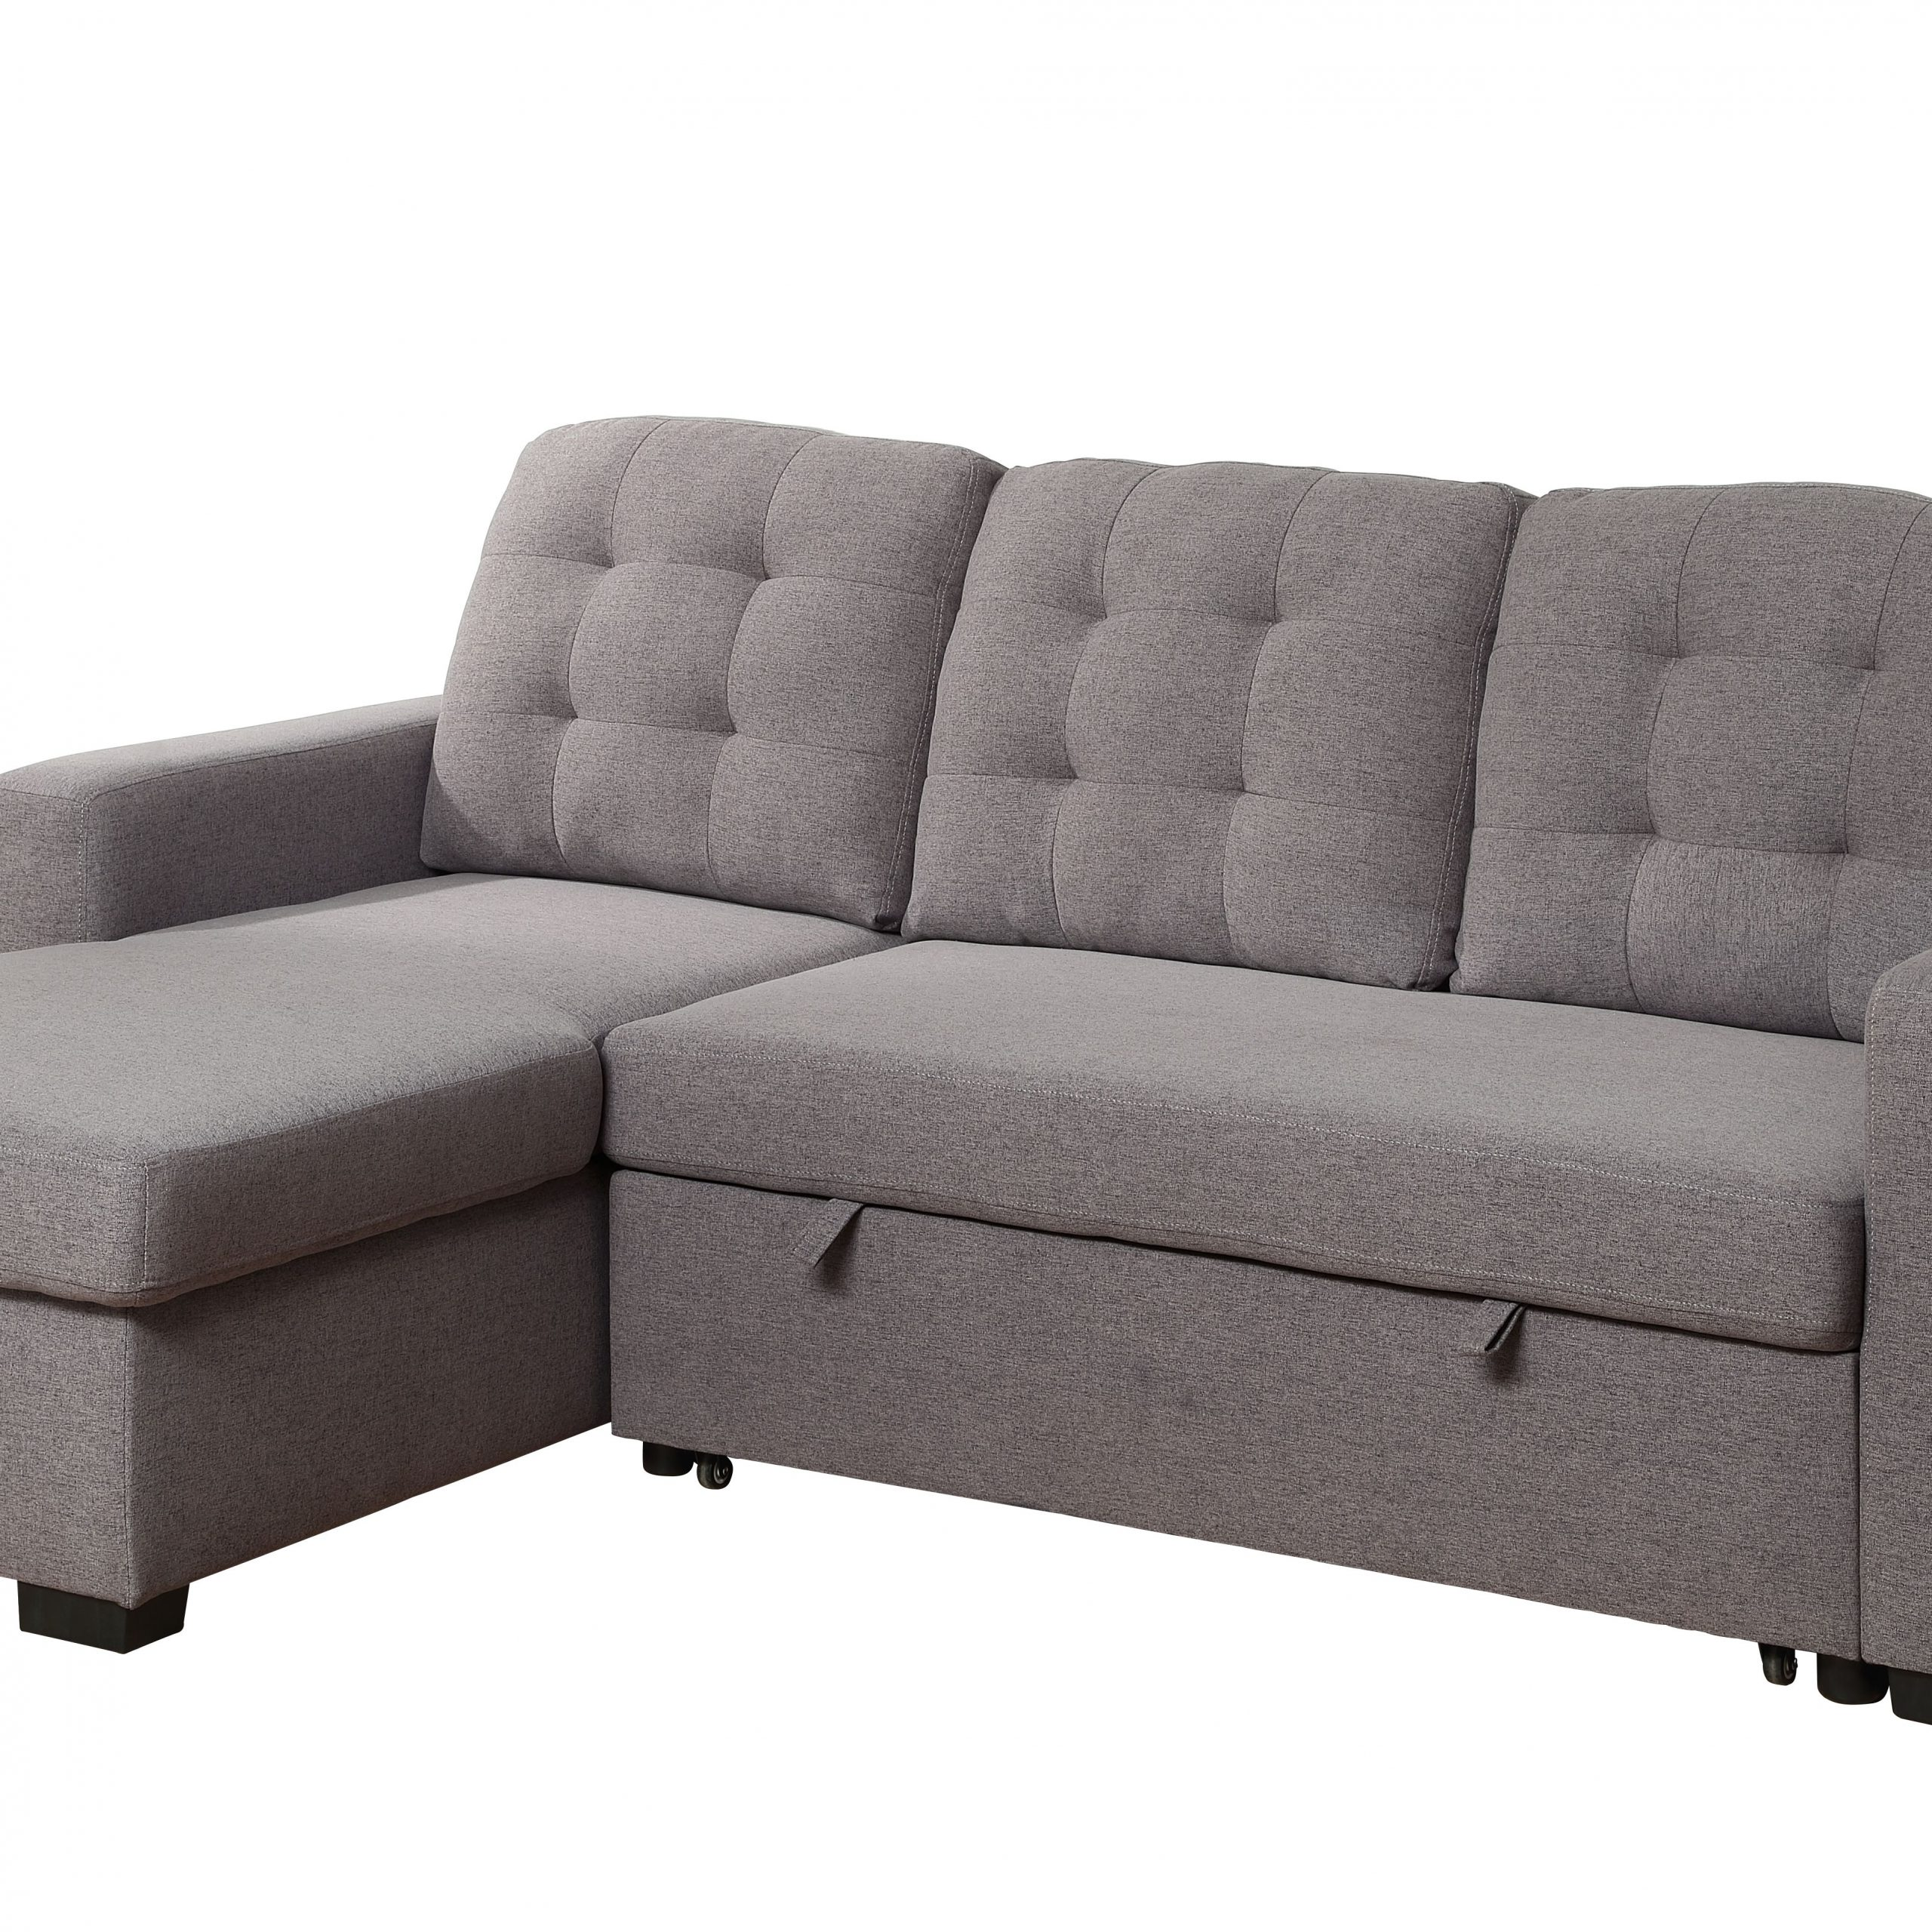 Most Recent Chambord Reversible Storage Sleeper Sectional Sofa In Gray Intended For Palisades Reversible Small Space Sectional Sofas With Storage (View 14 of 25)